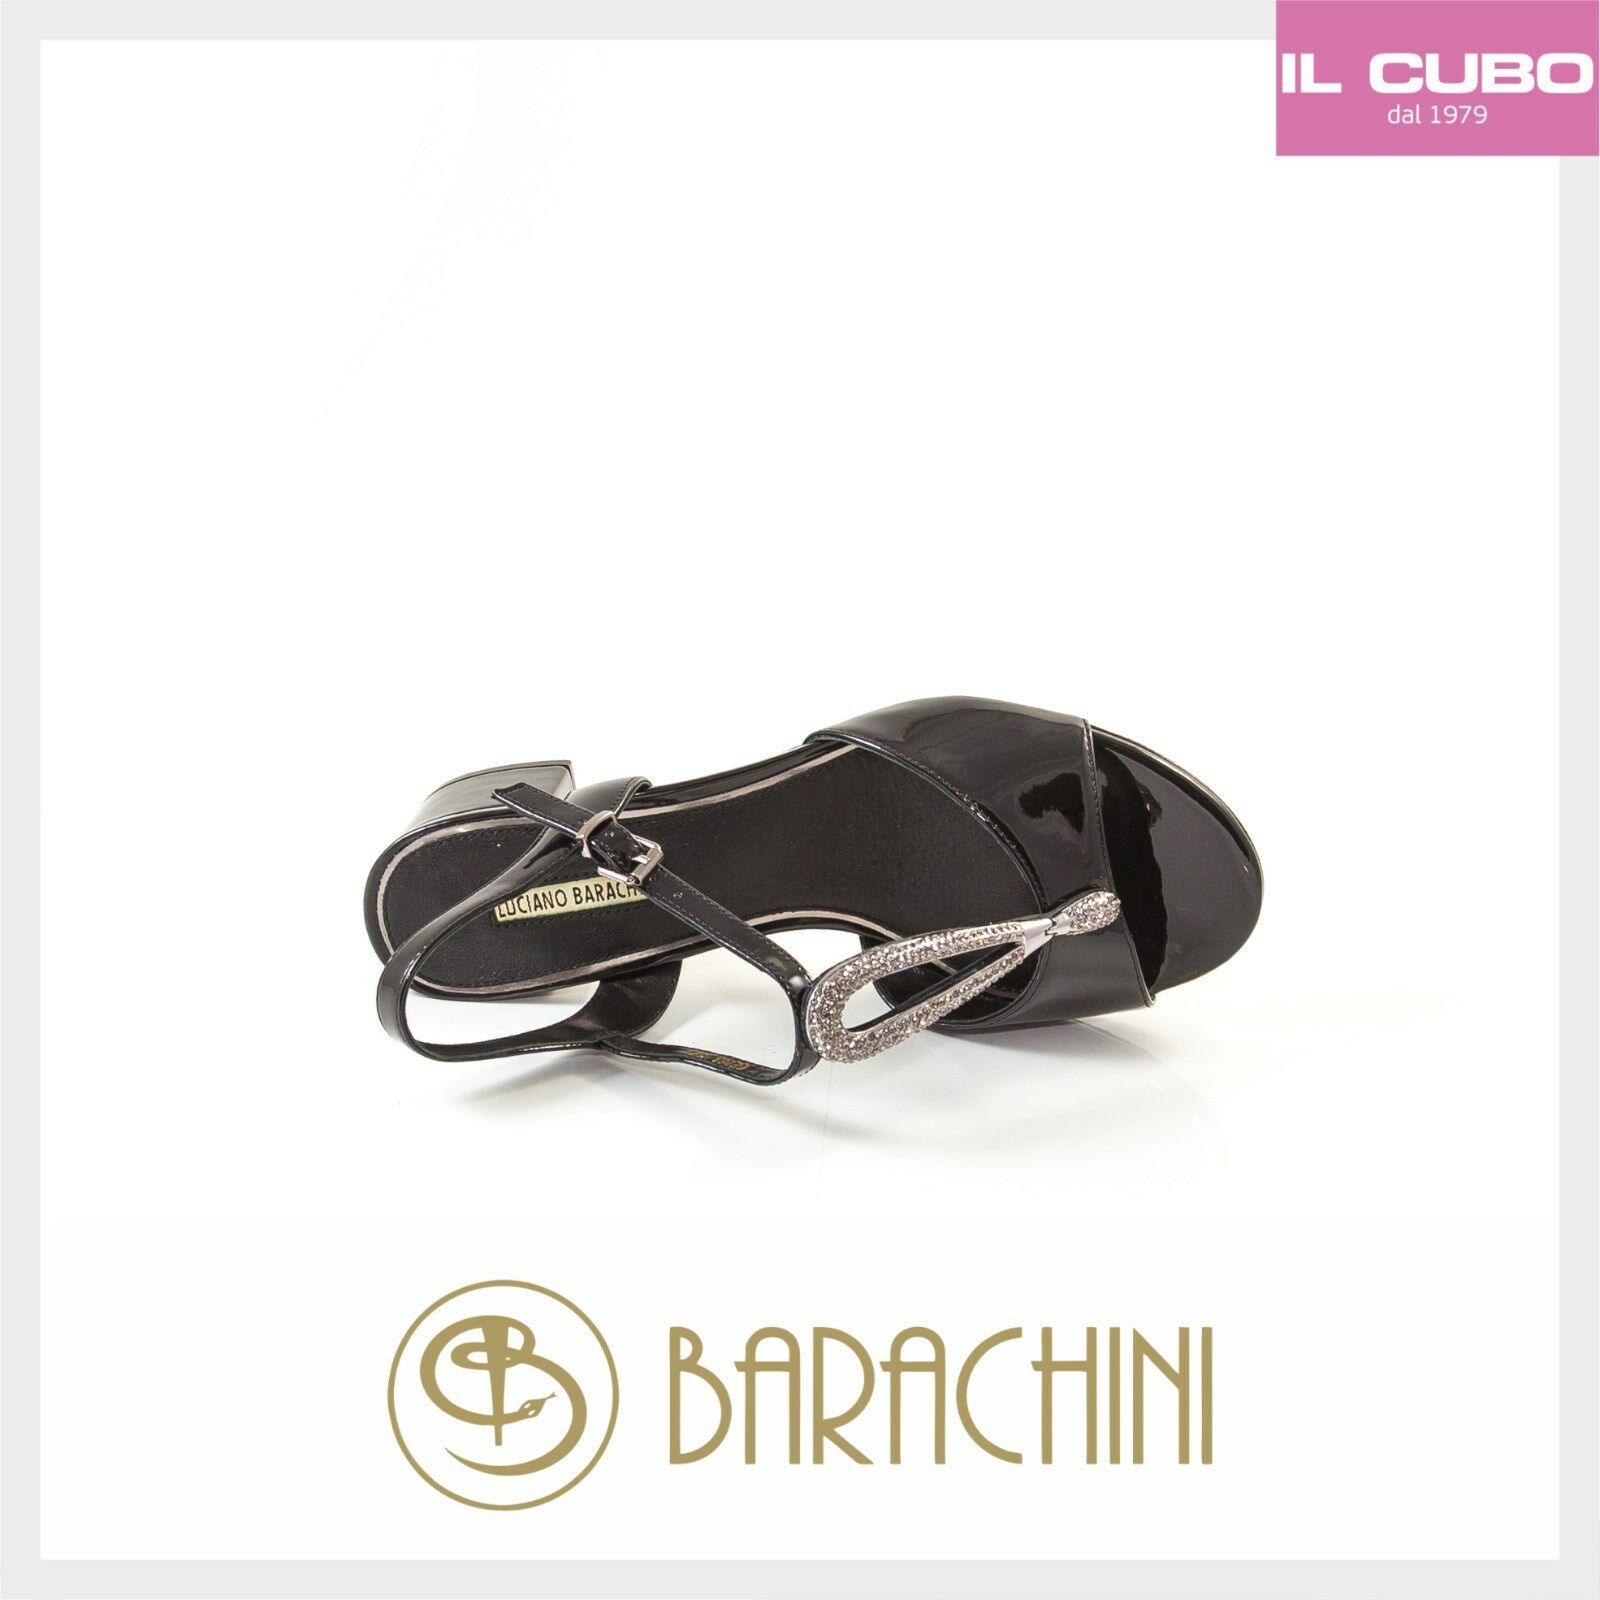 LUCIANO BARACHINI SANDALO  VERNICE NERO TACCO H 4 CM  SANDALO NEW COLLECTION 7fd5fa